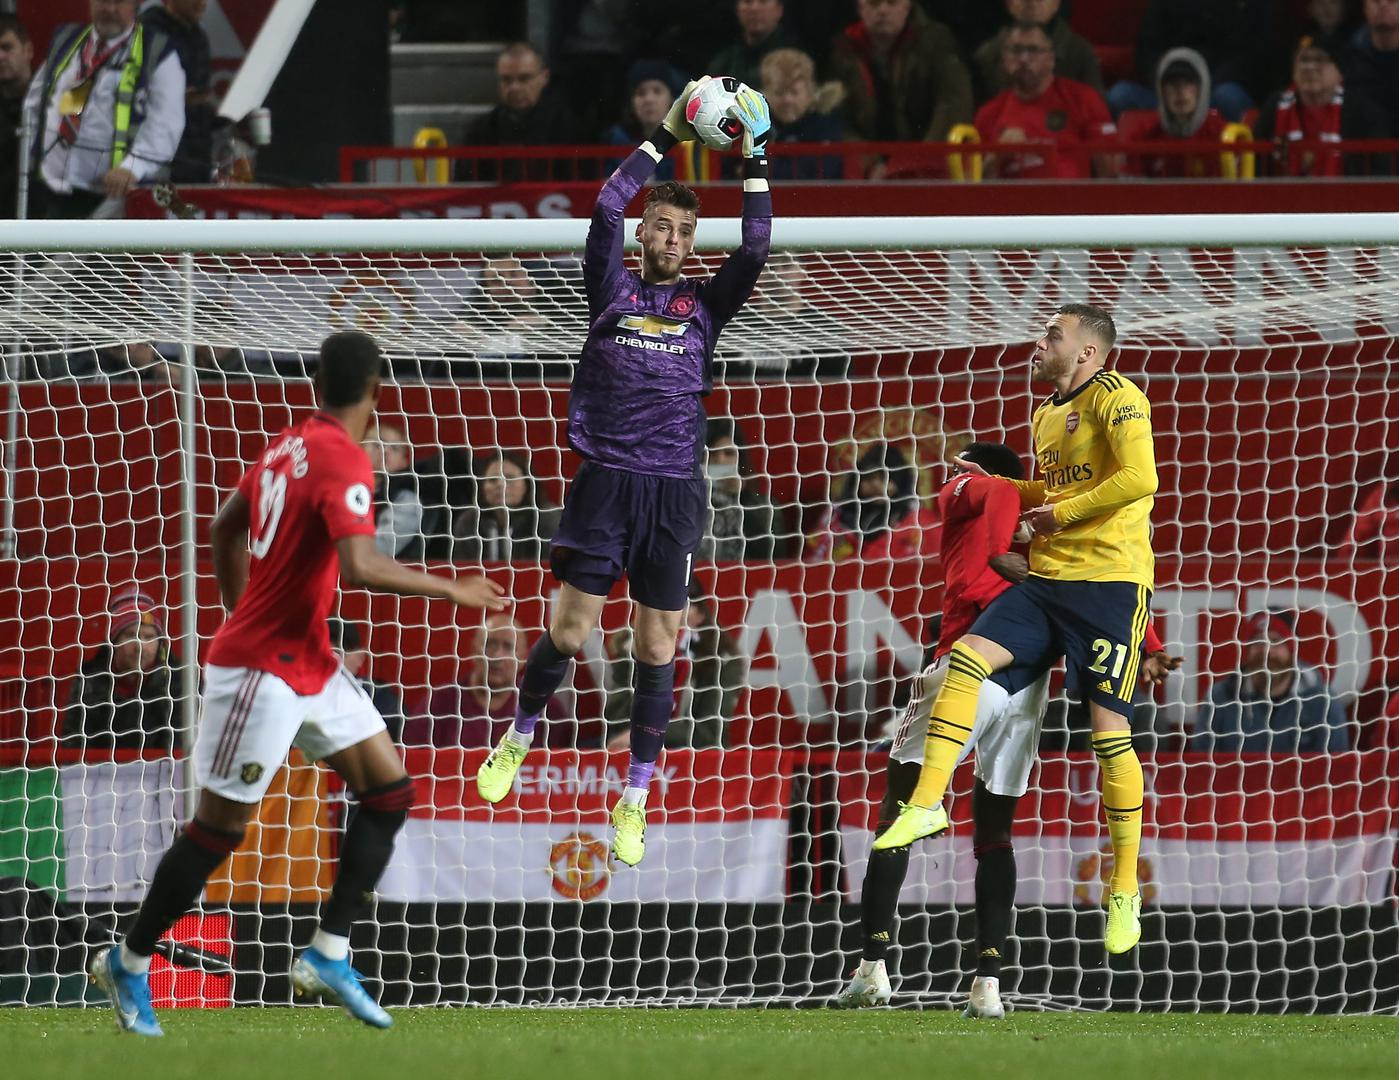 David De Gea rises to catch the ball.